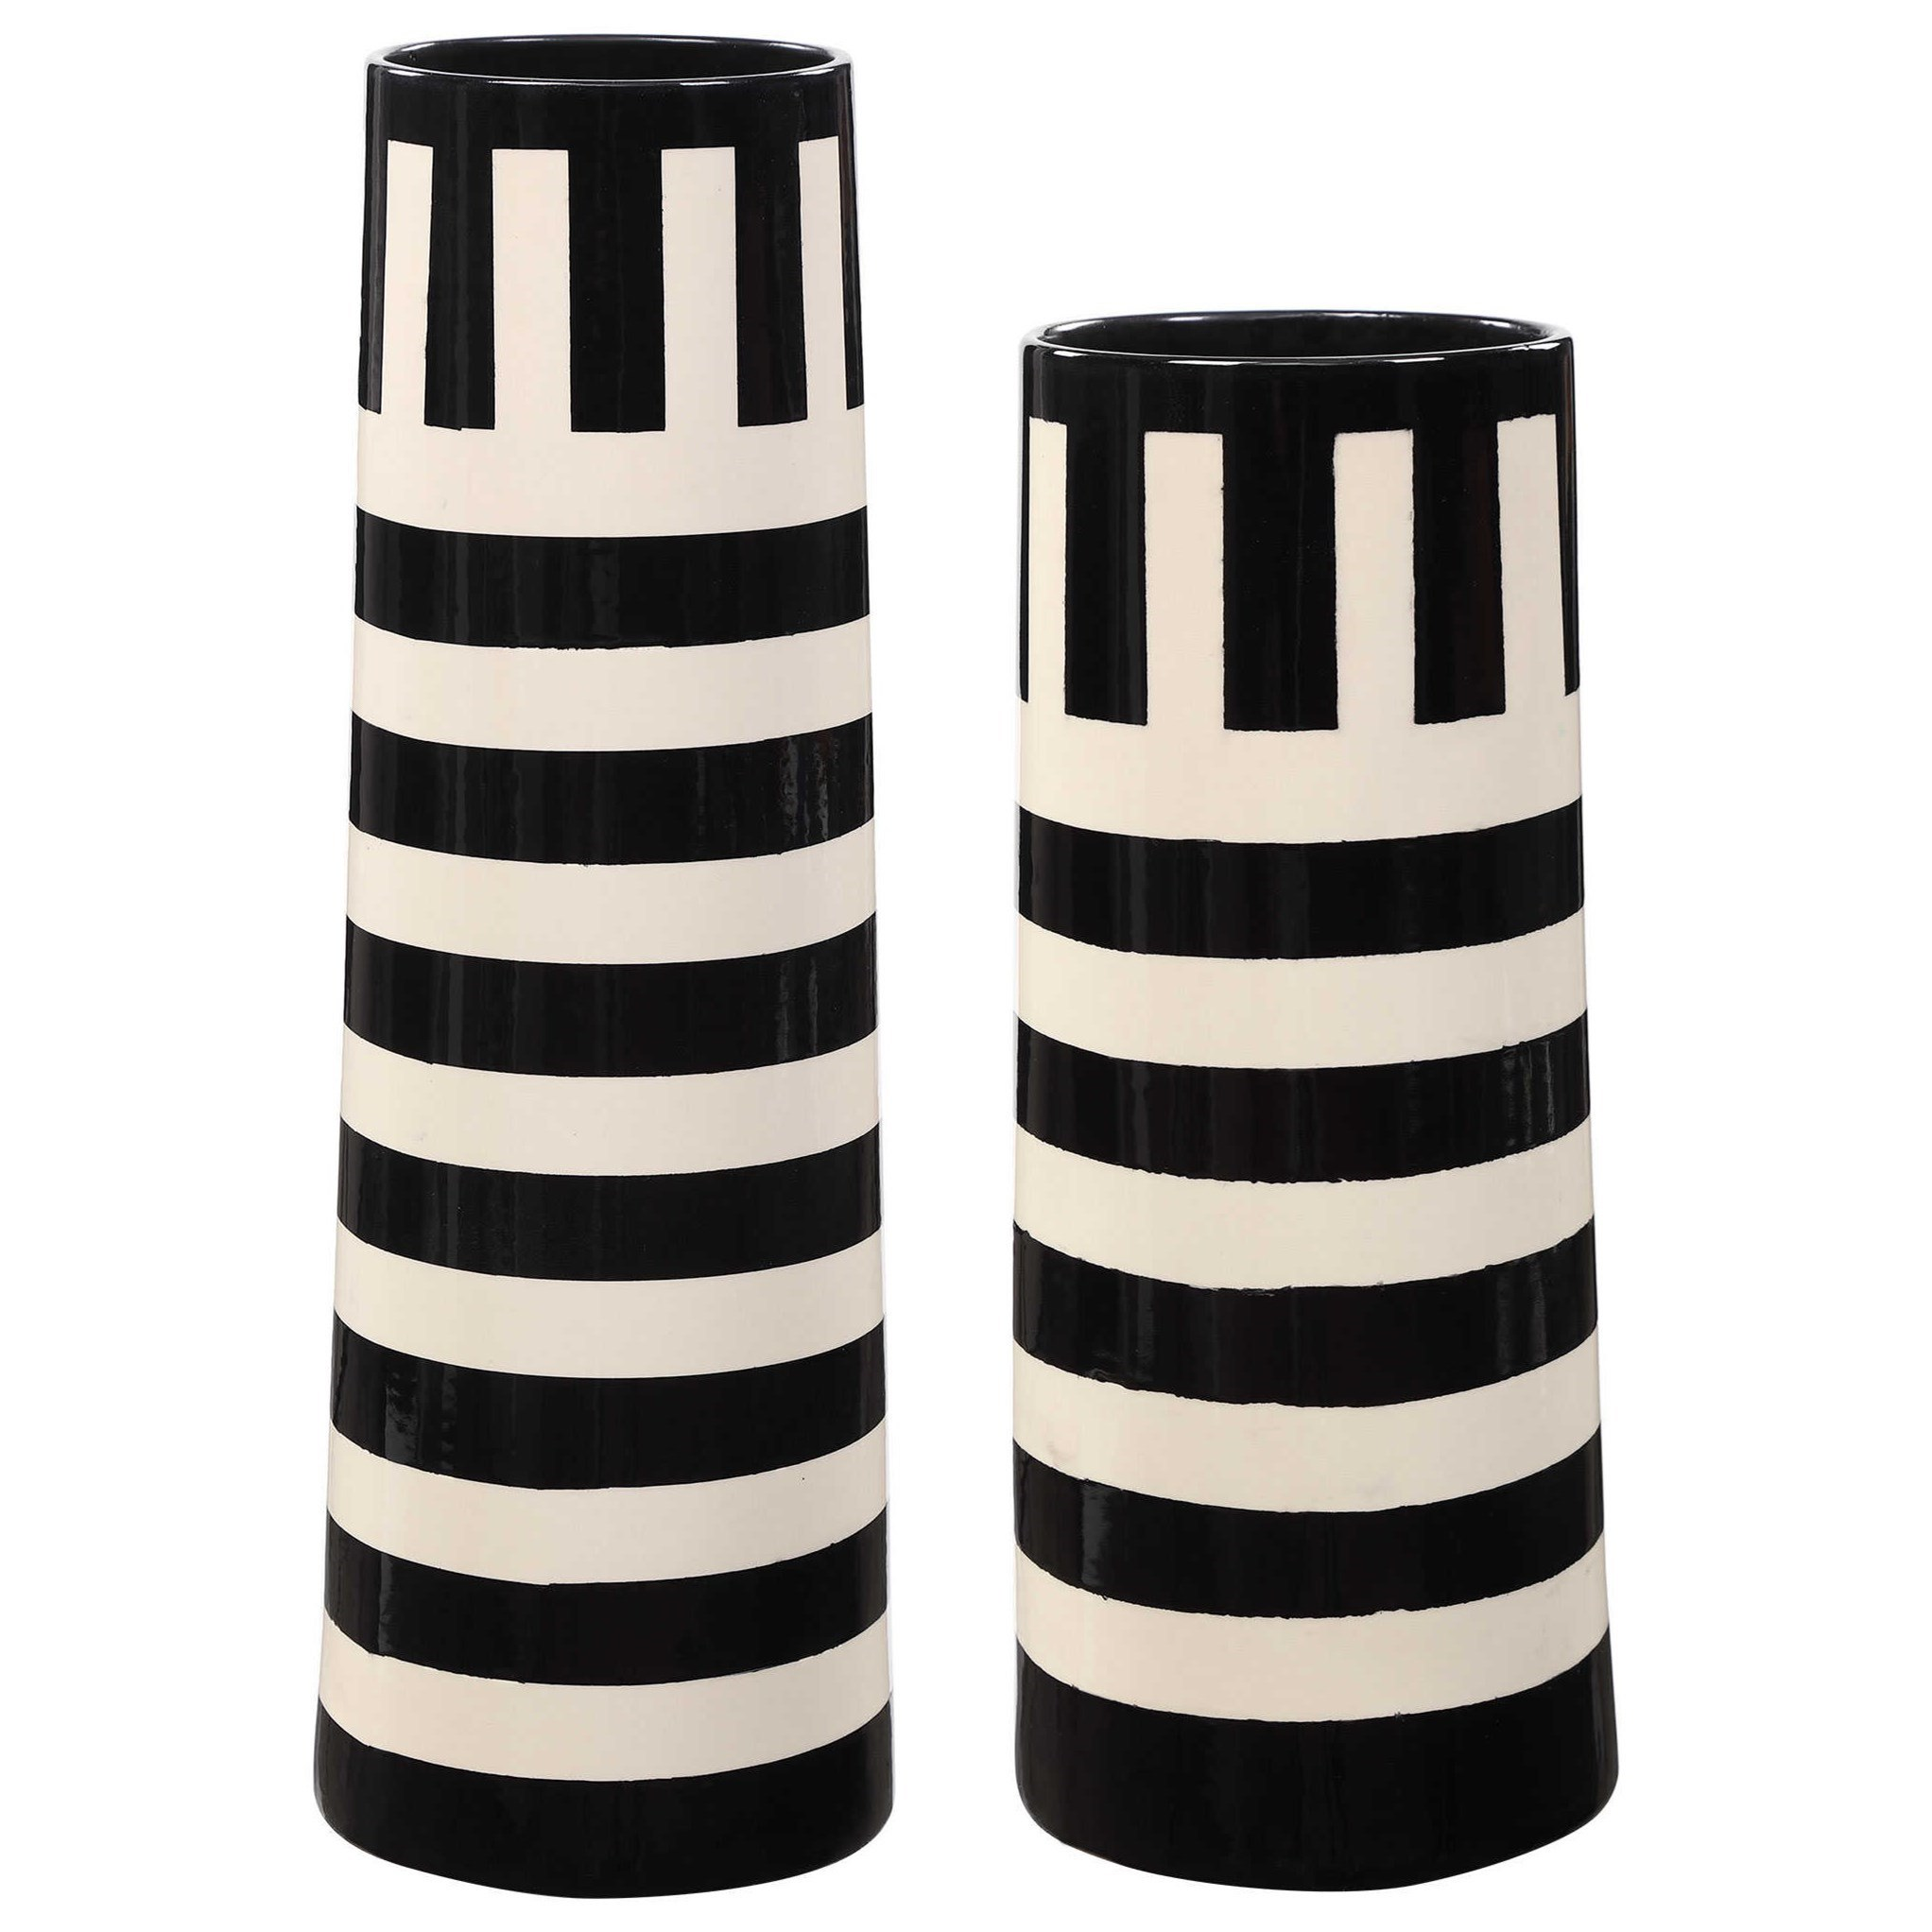 Accessories - Vases and Urns Black & White Vases, S/2 by Uttermost at Mueller Furniture